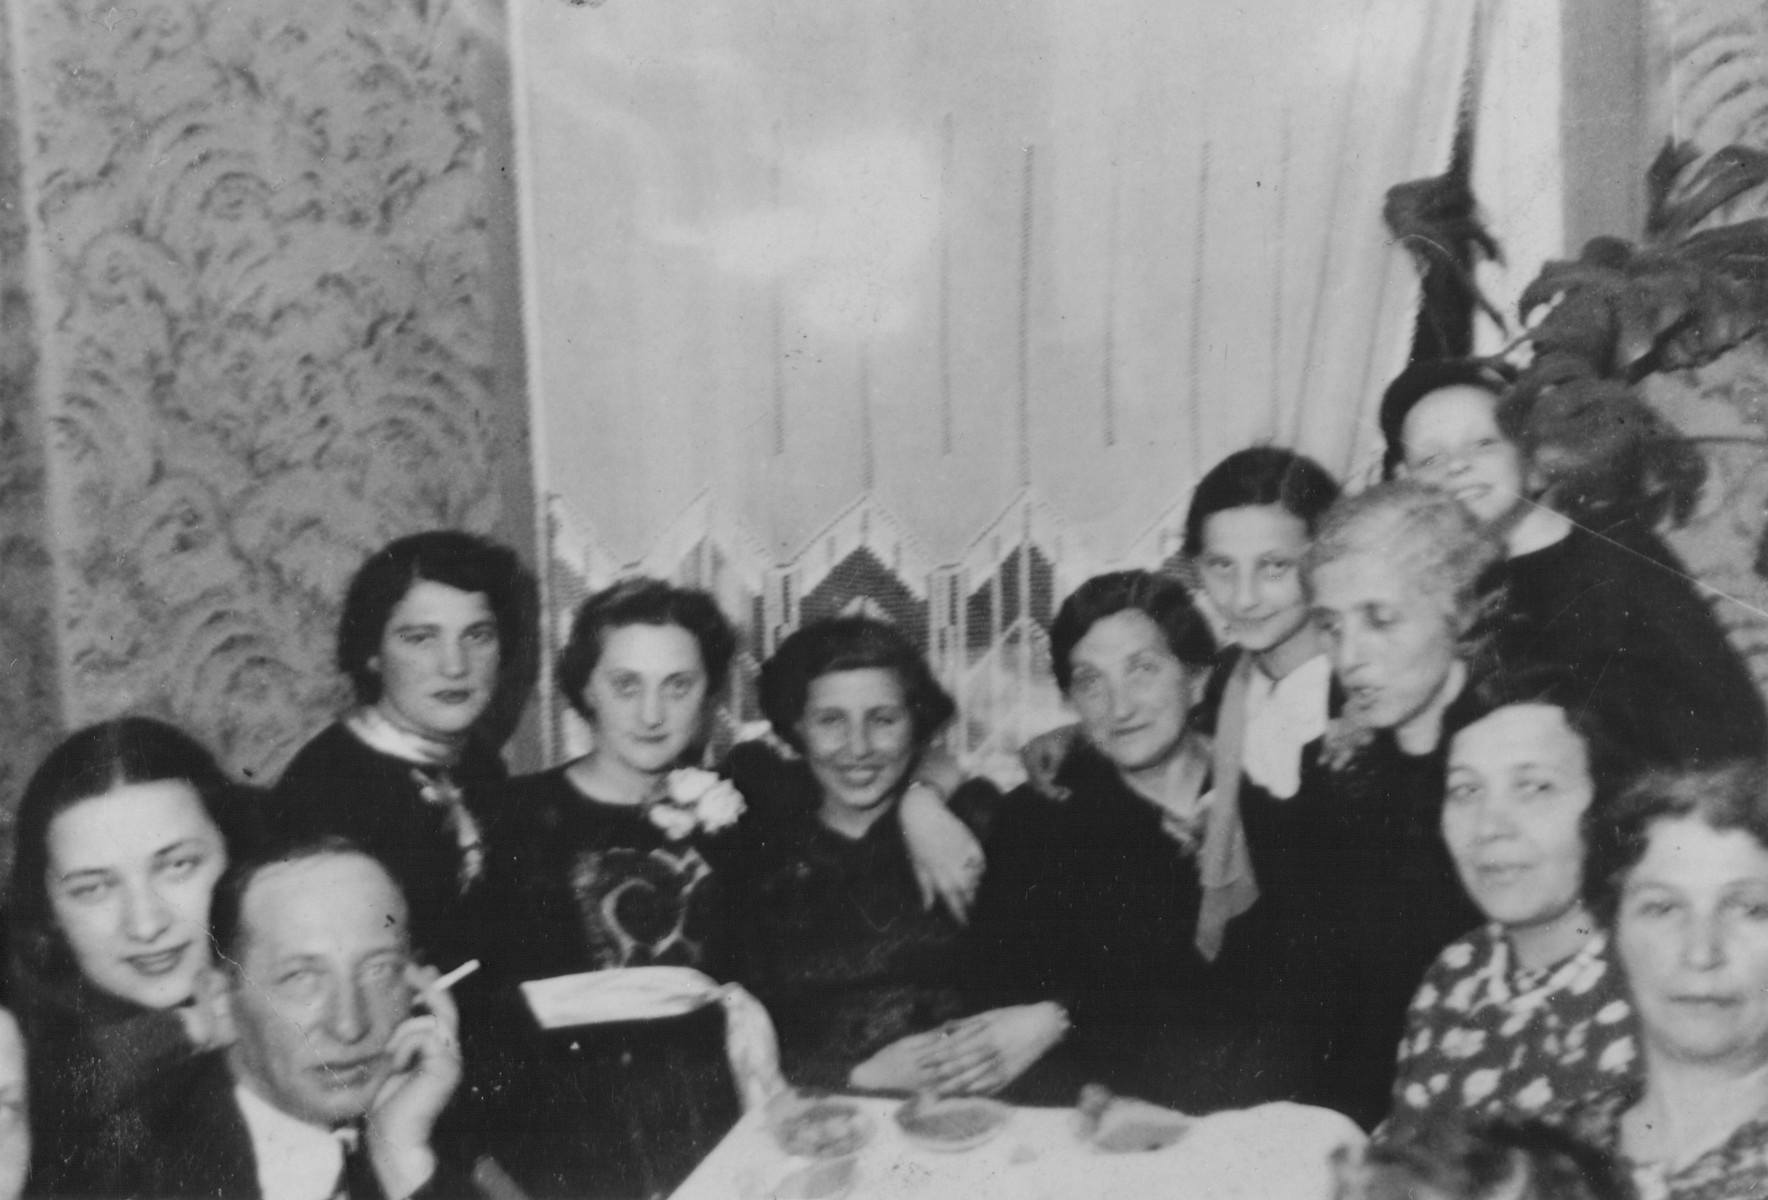 Members of the Fefer and Sztajnman families at a gathering in the Fefer home in Lublin to celebrate the engagement (Tenayim) of Majer Sztajnman and Cyla Fefer.